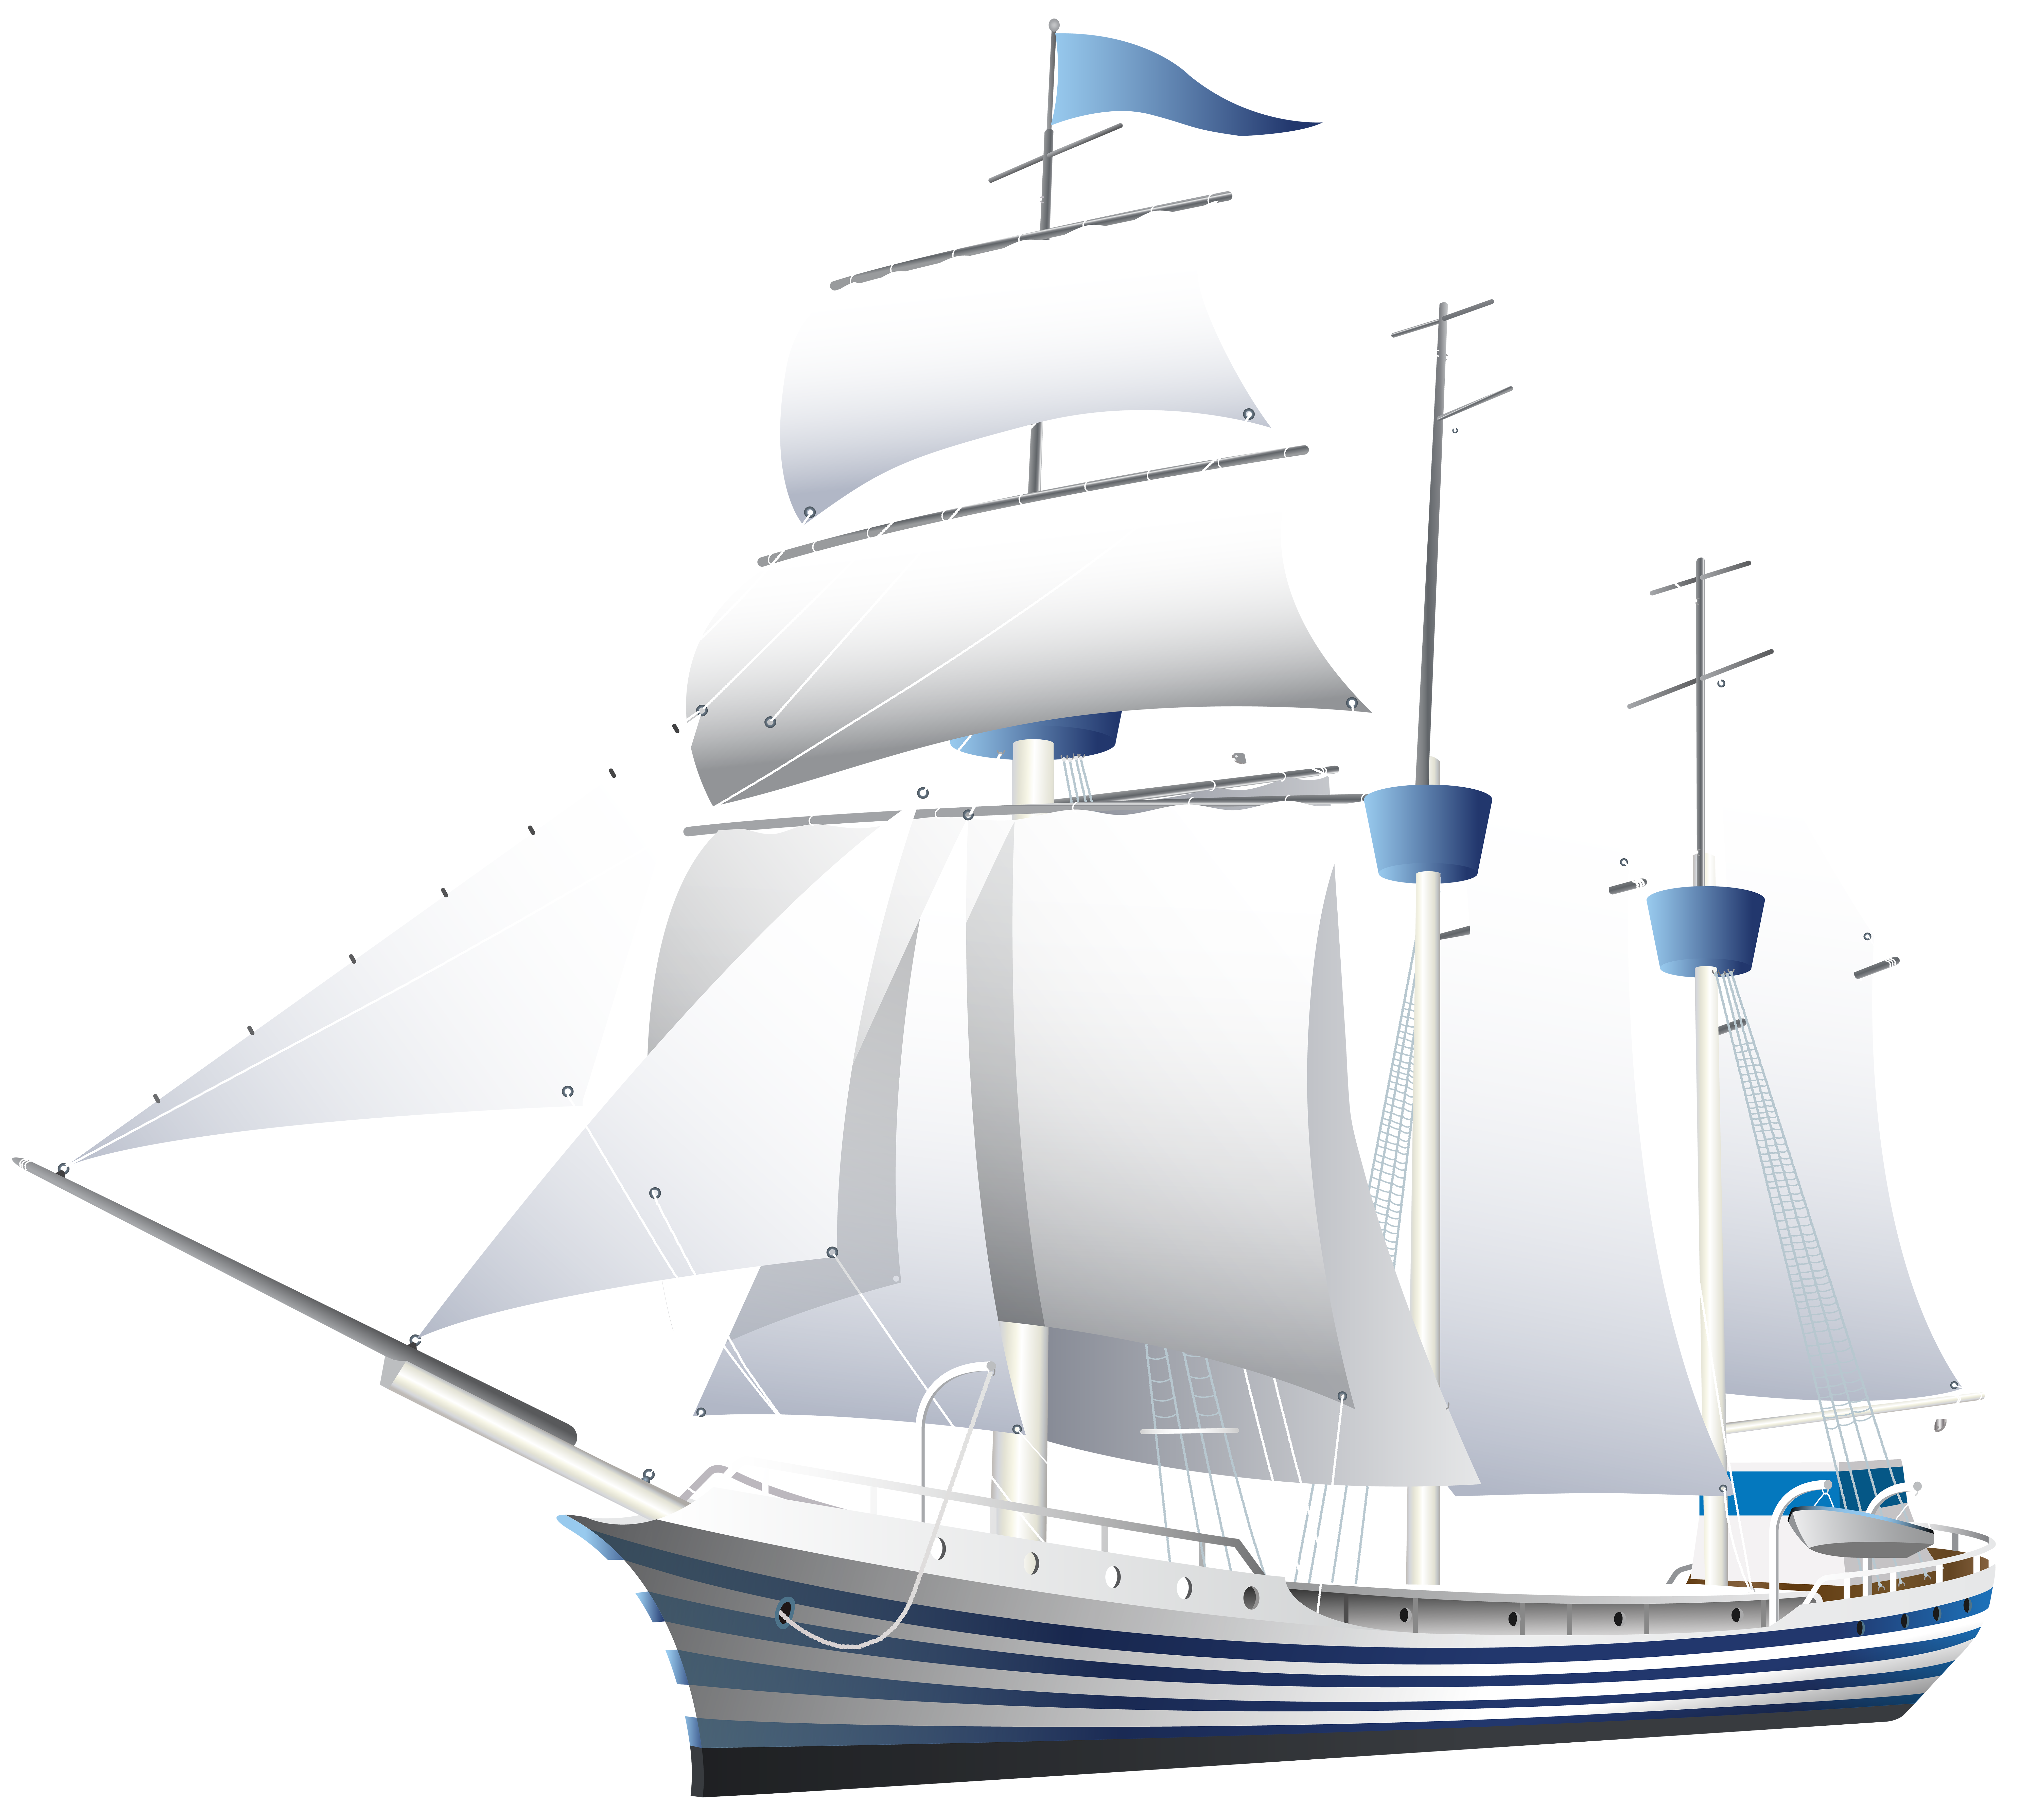 vector royalty free Yacht clipart yaught. Sailing boat transparent png